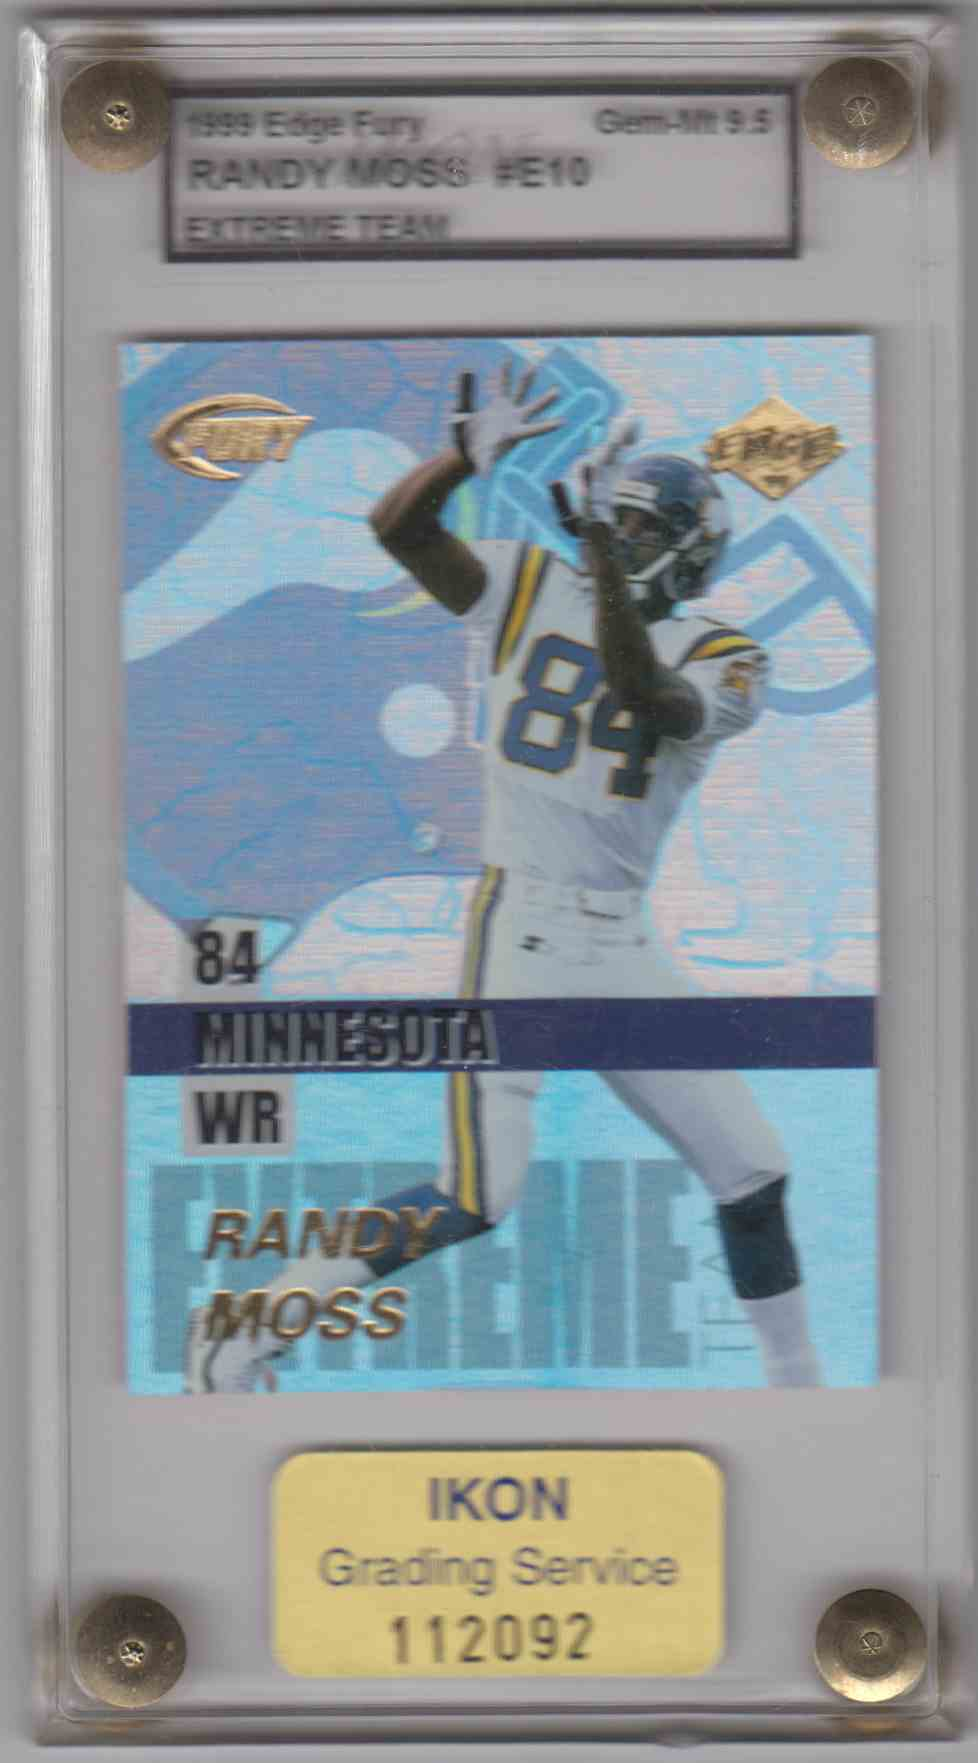 1999 Edge Fury Extreme Team Randy Moss #E10 card front image